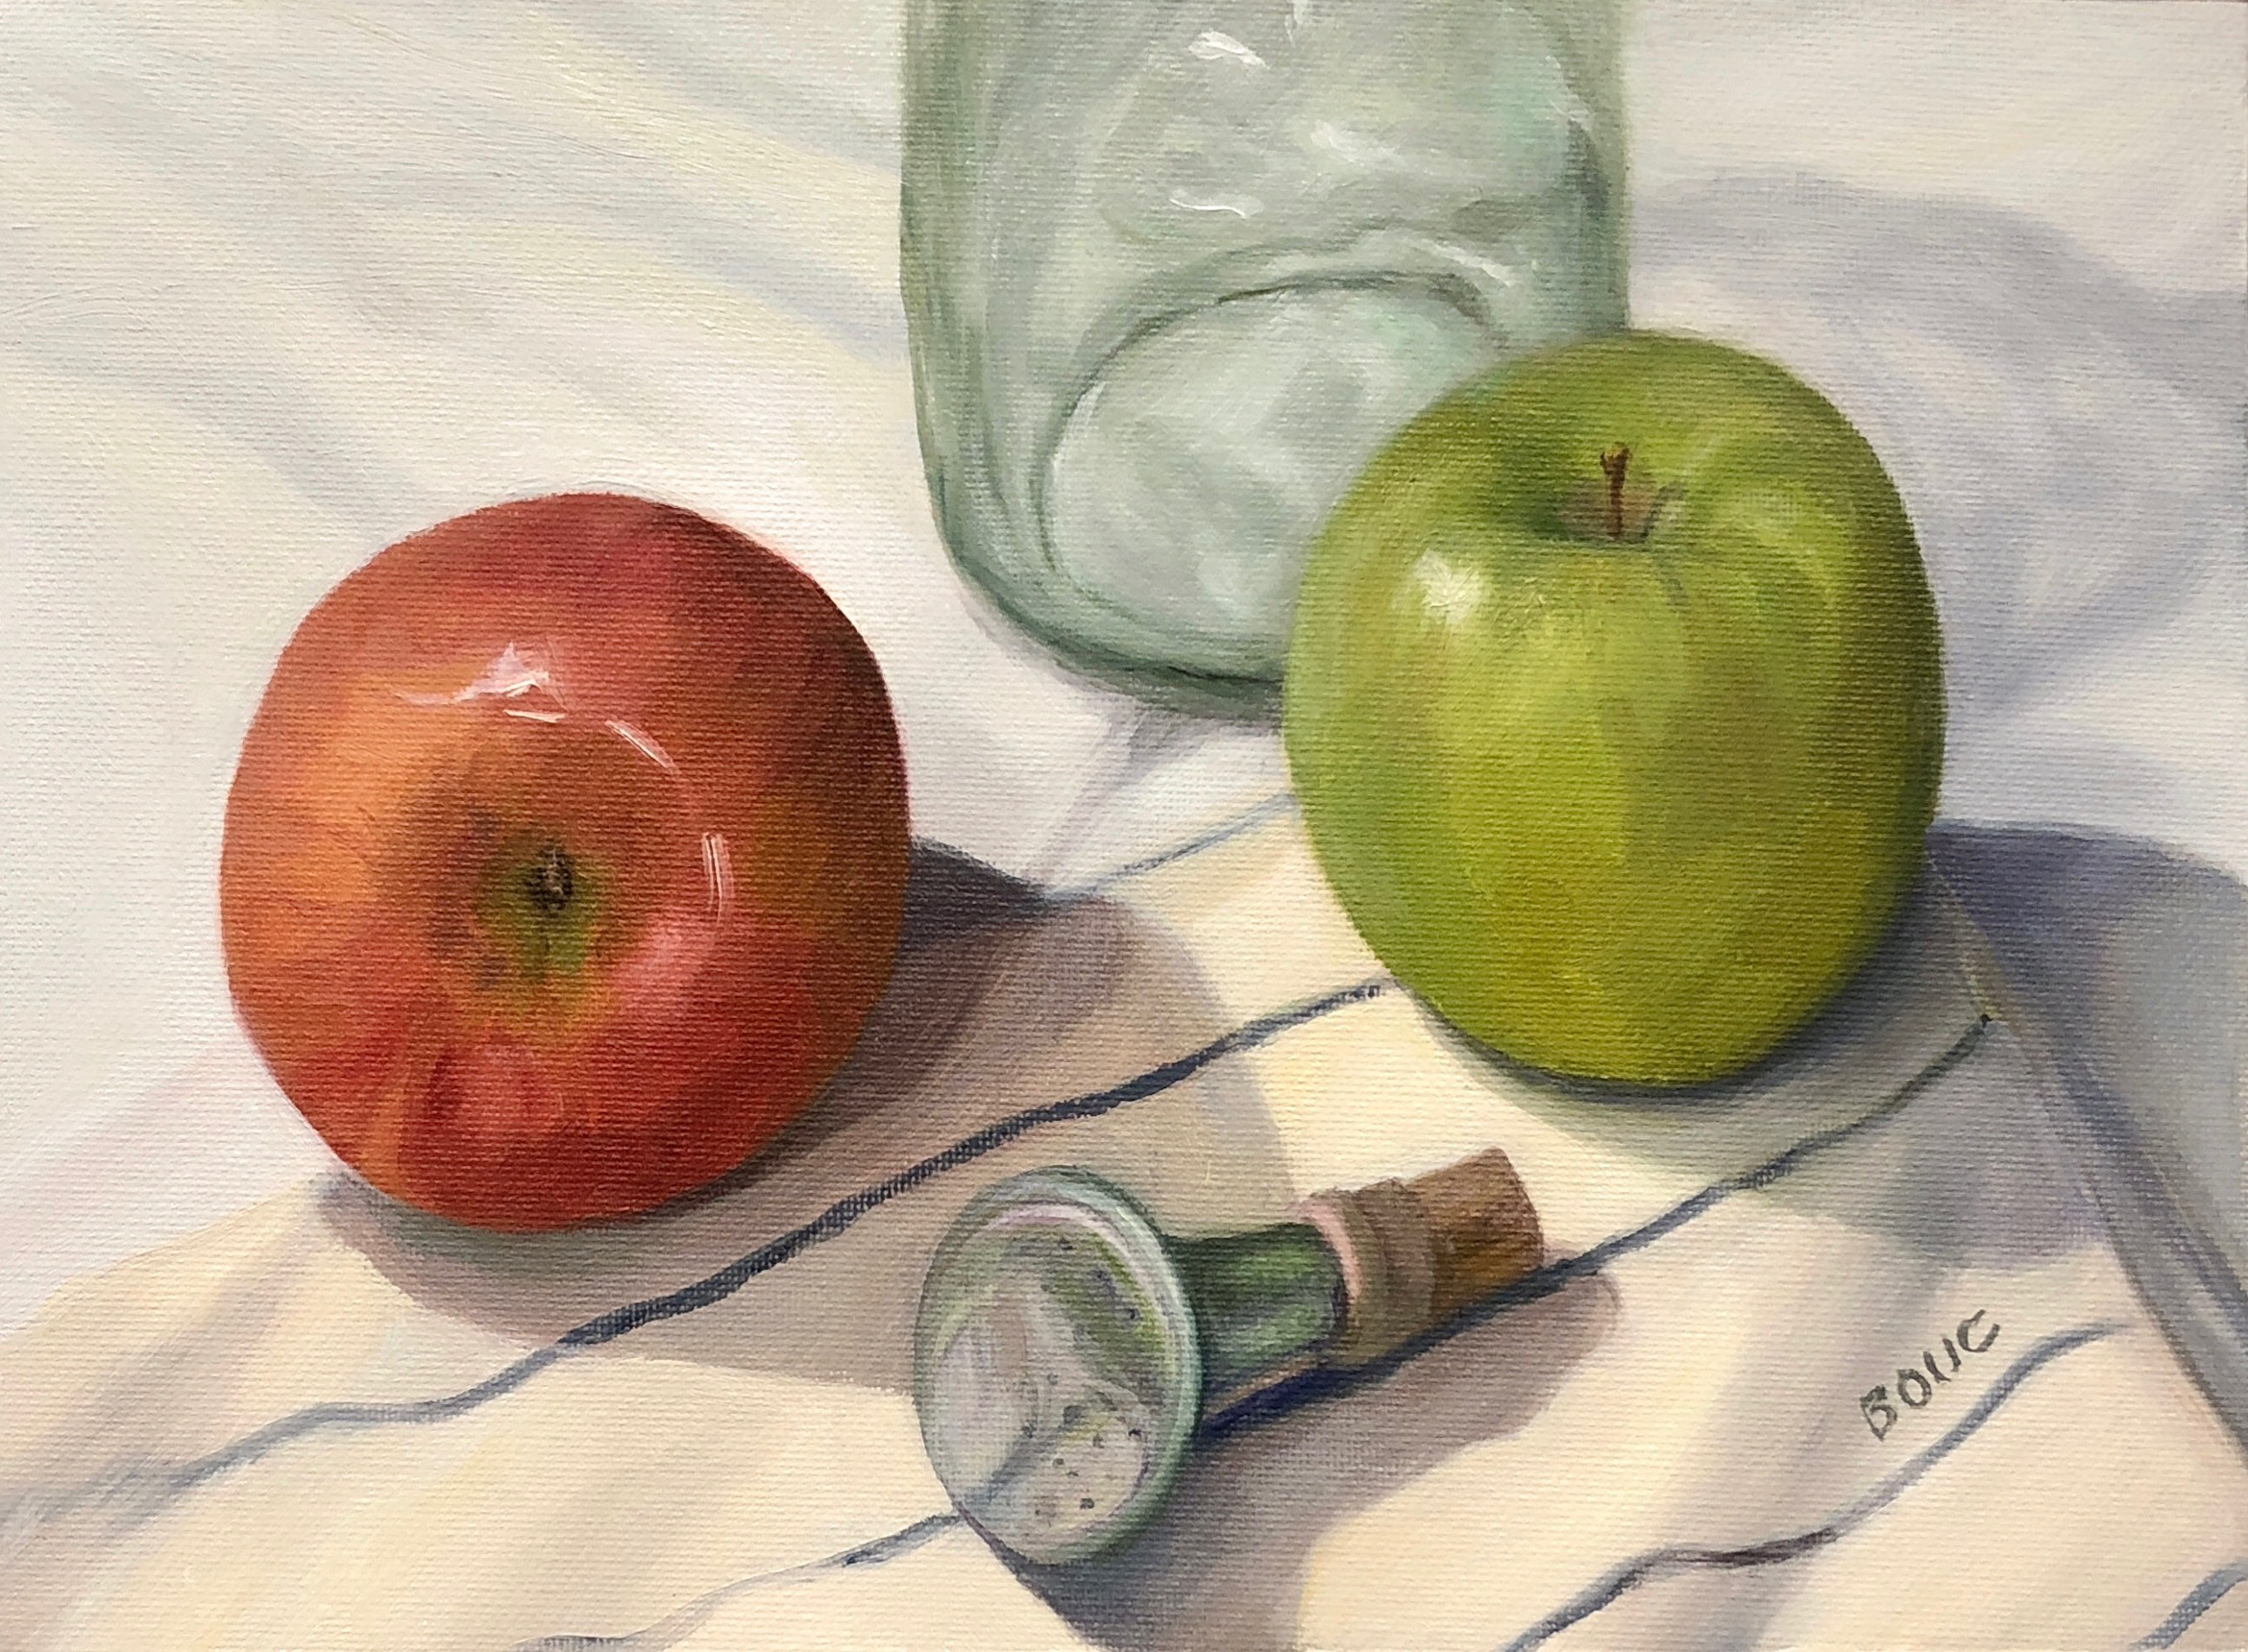 Grandma's Laundry Sprinkler and Apples, oil on canvas, 9x12 inches